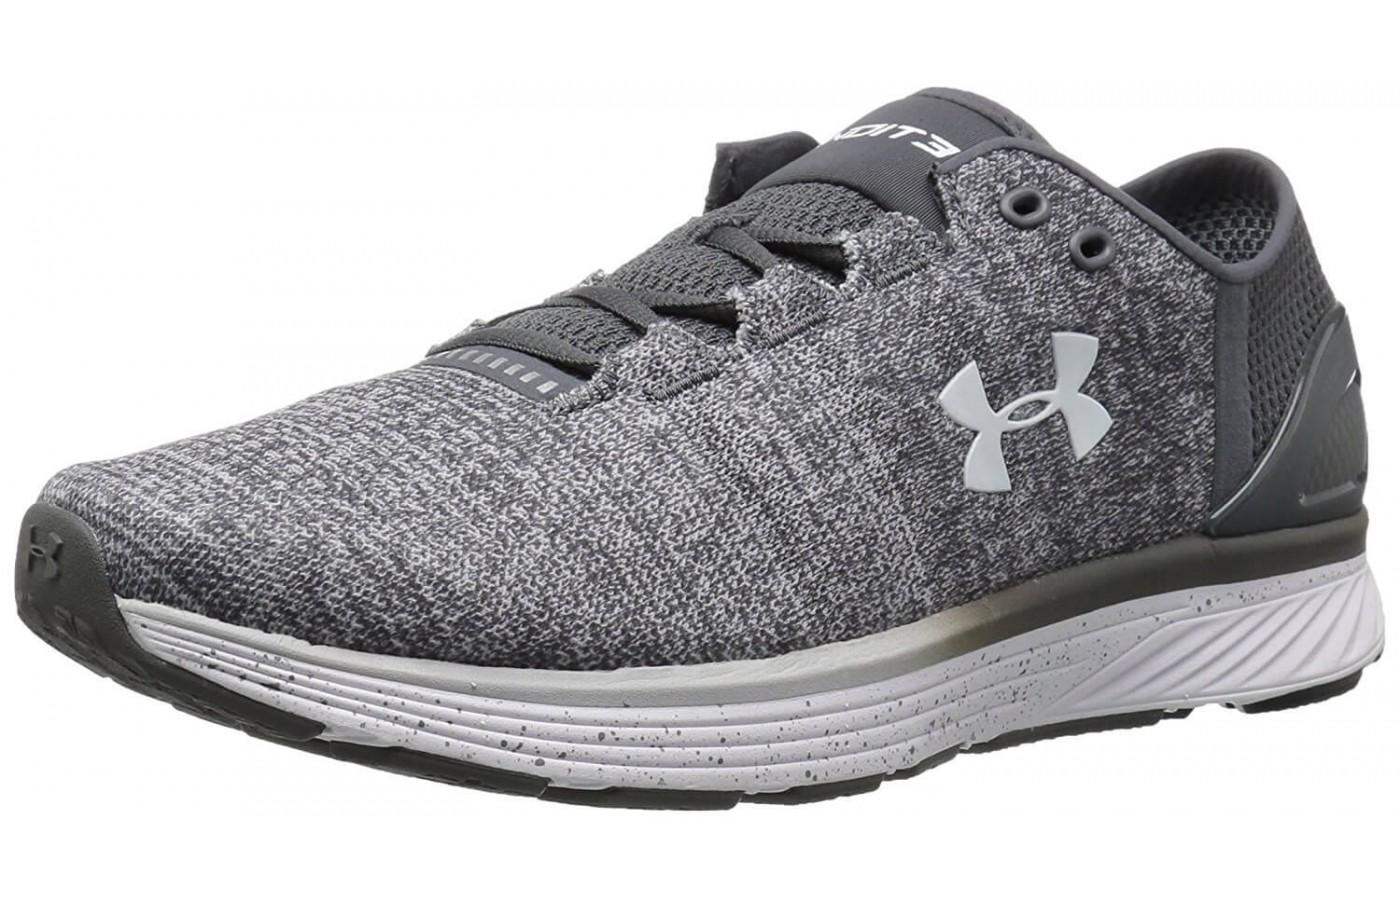 Cheap under armour barefoot shoes Buy